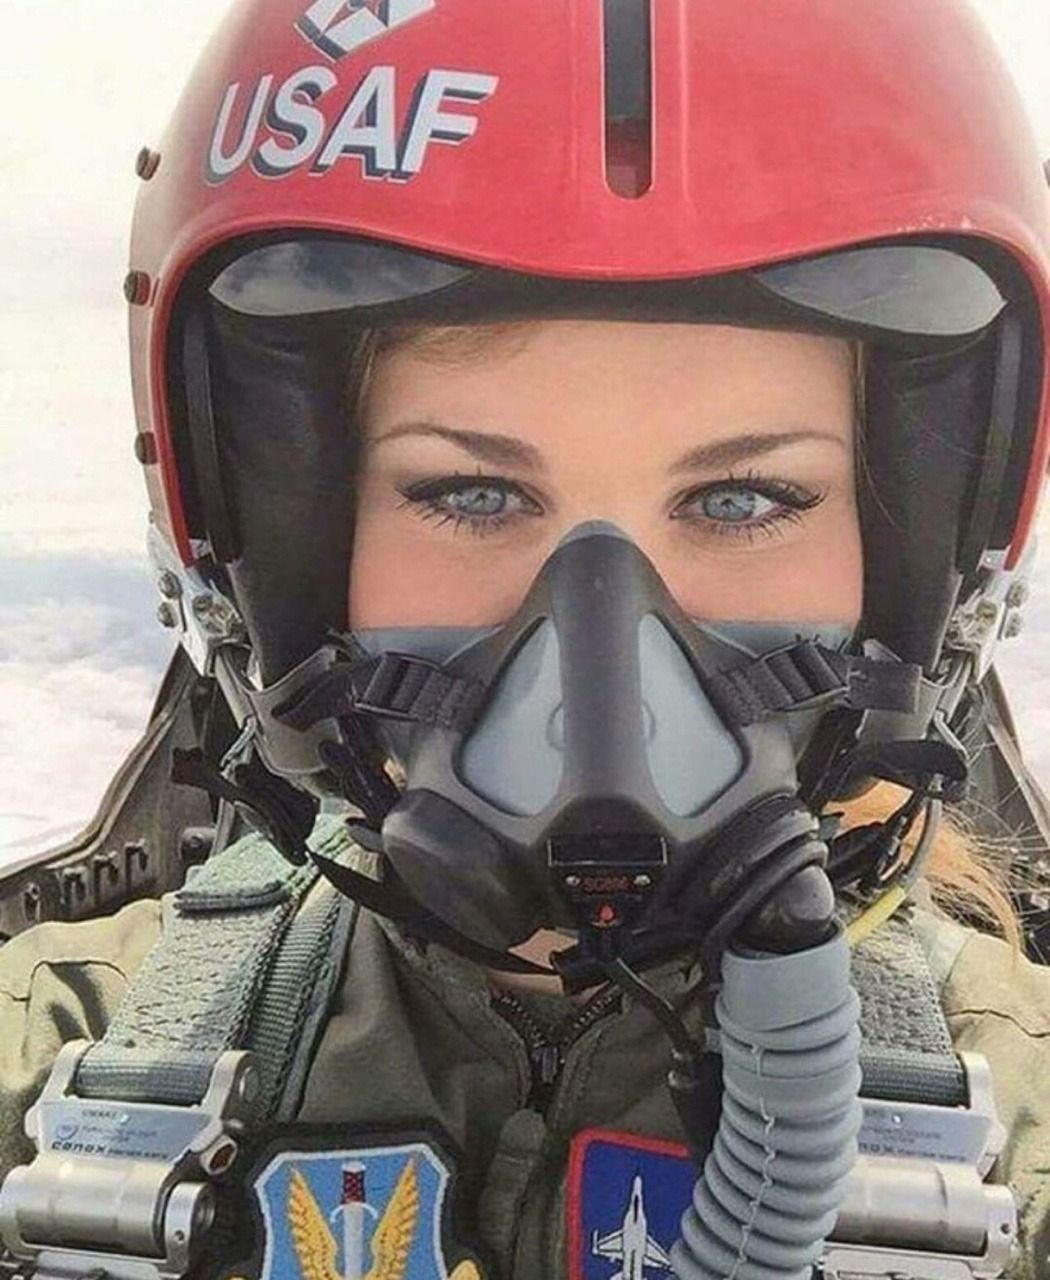 Eyes to the skies fighter pilot air force women female